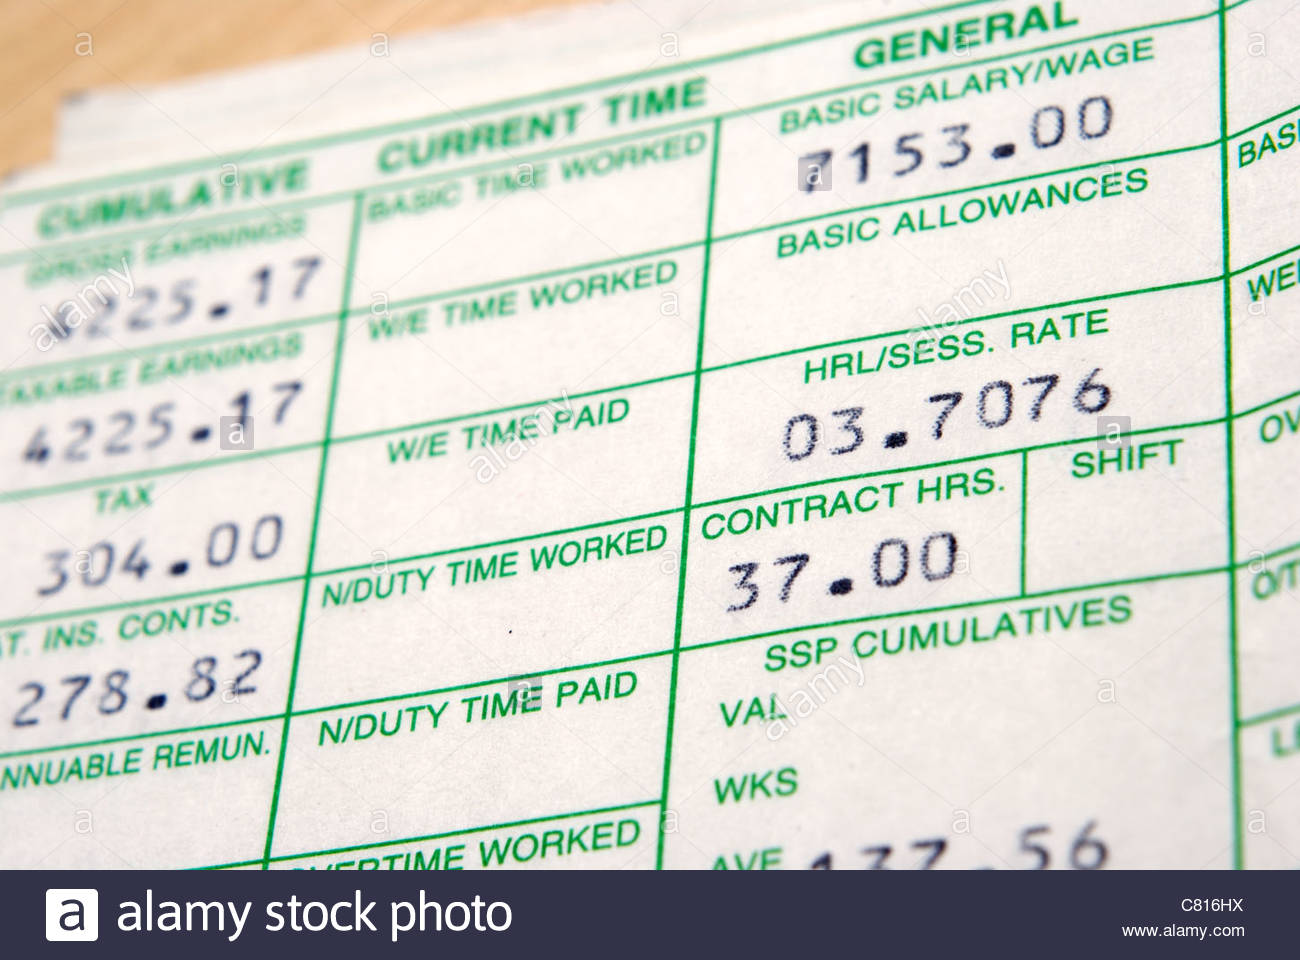 UK wage slip. Tax and national insurance deductions. - Stock Image